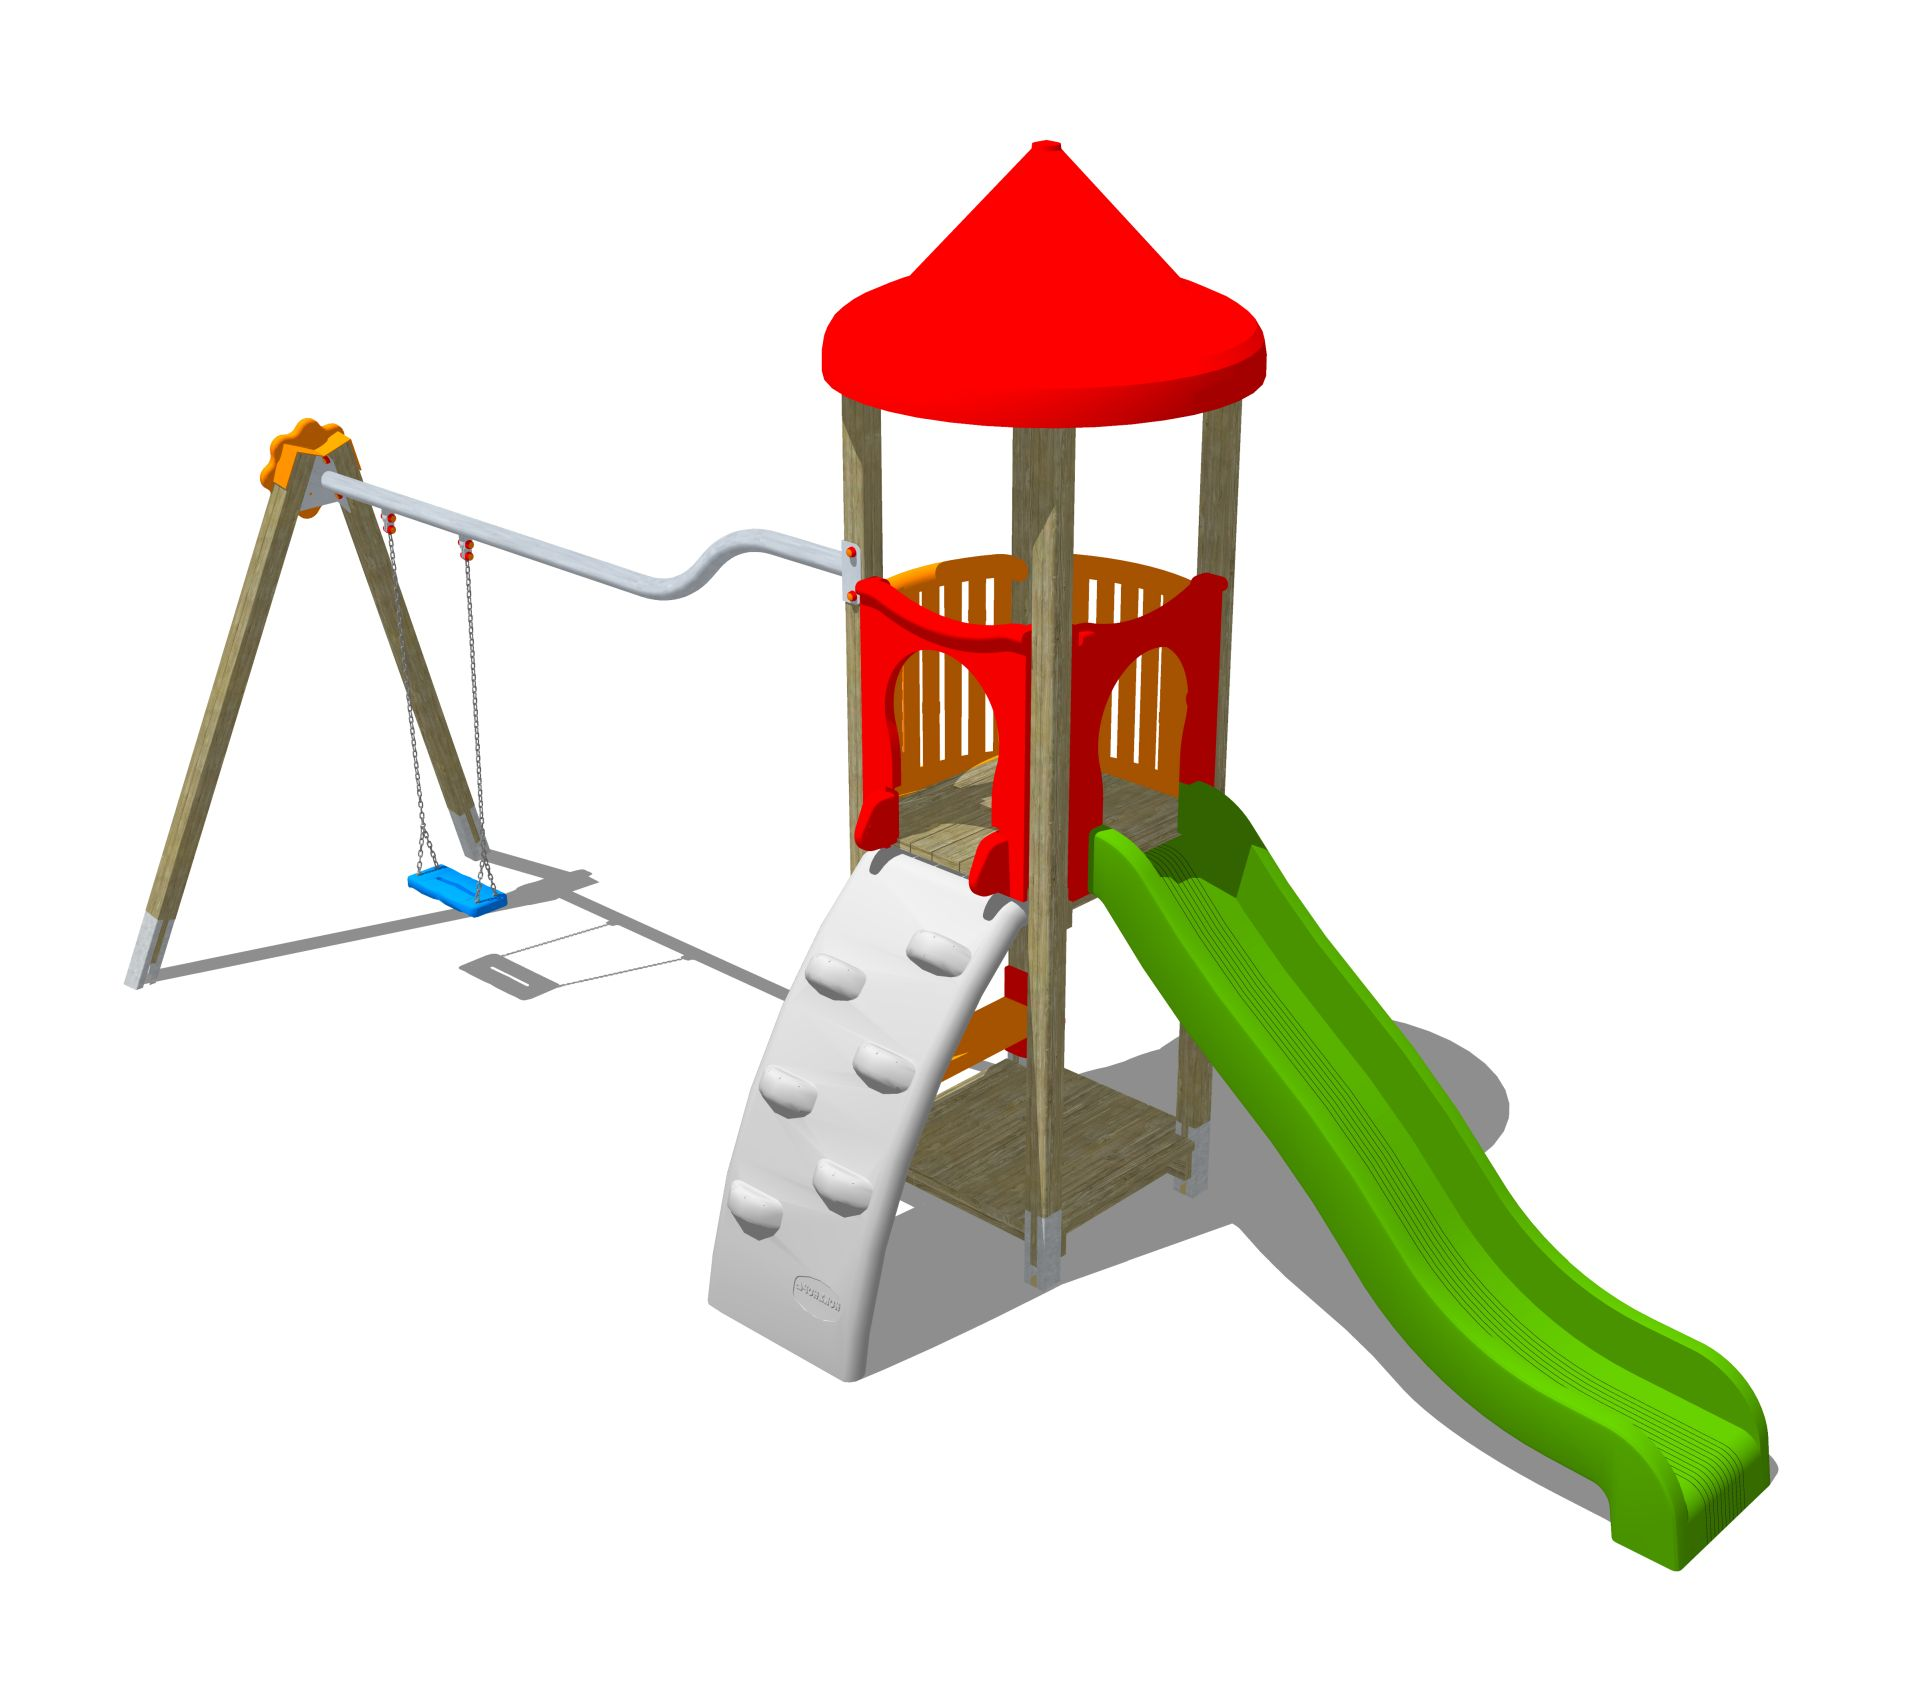 Holzhof ALADIN Aladin tower, slide h 144, polyethylene ramp + swing 1 palm shape seat